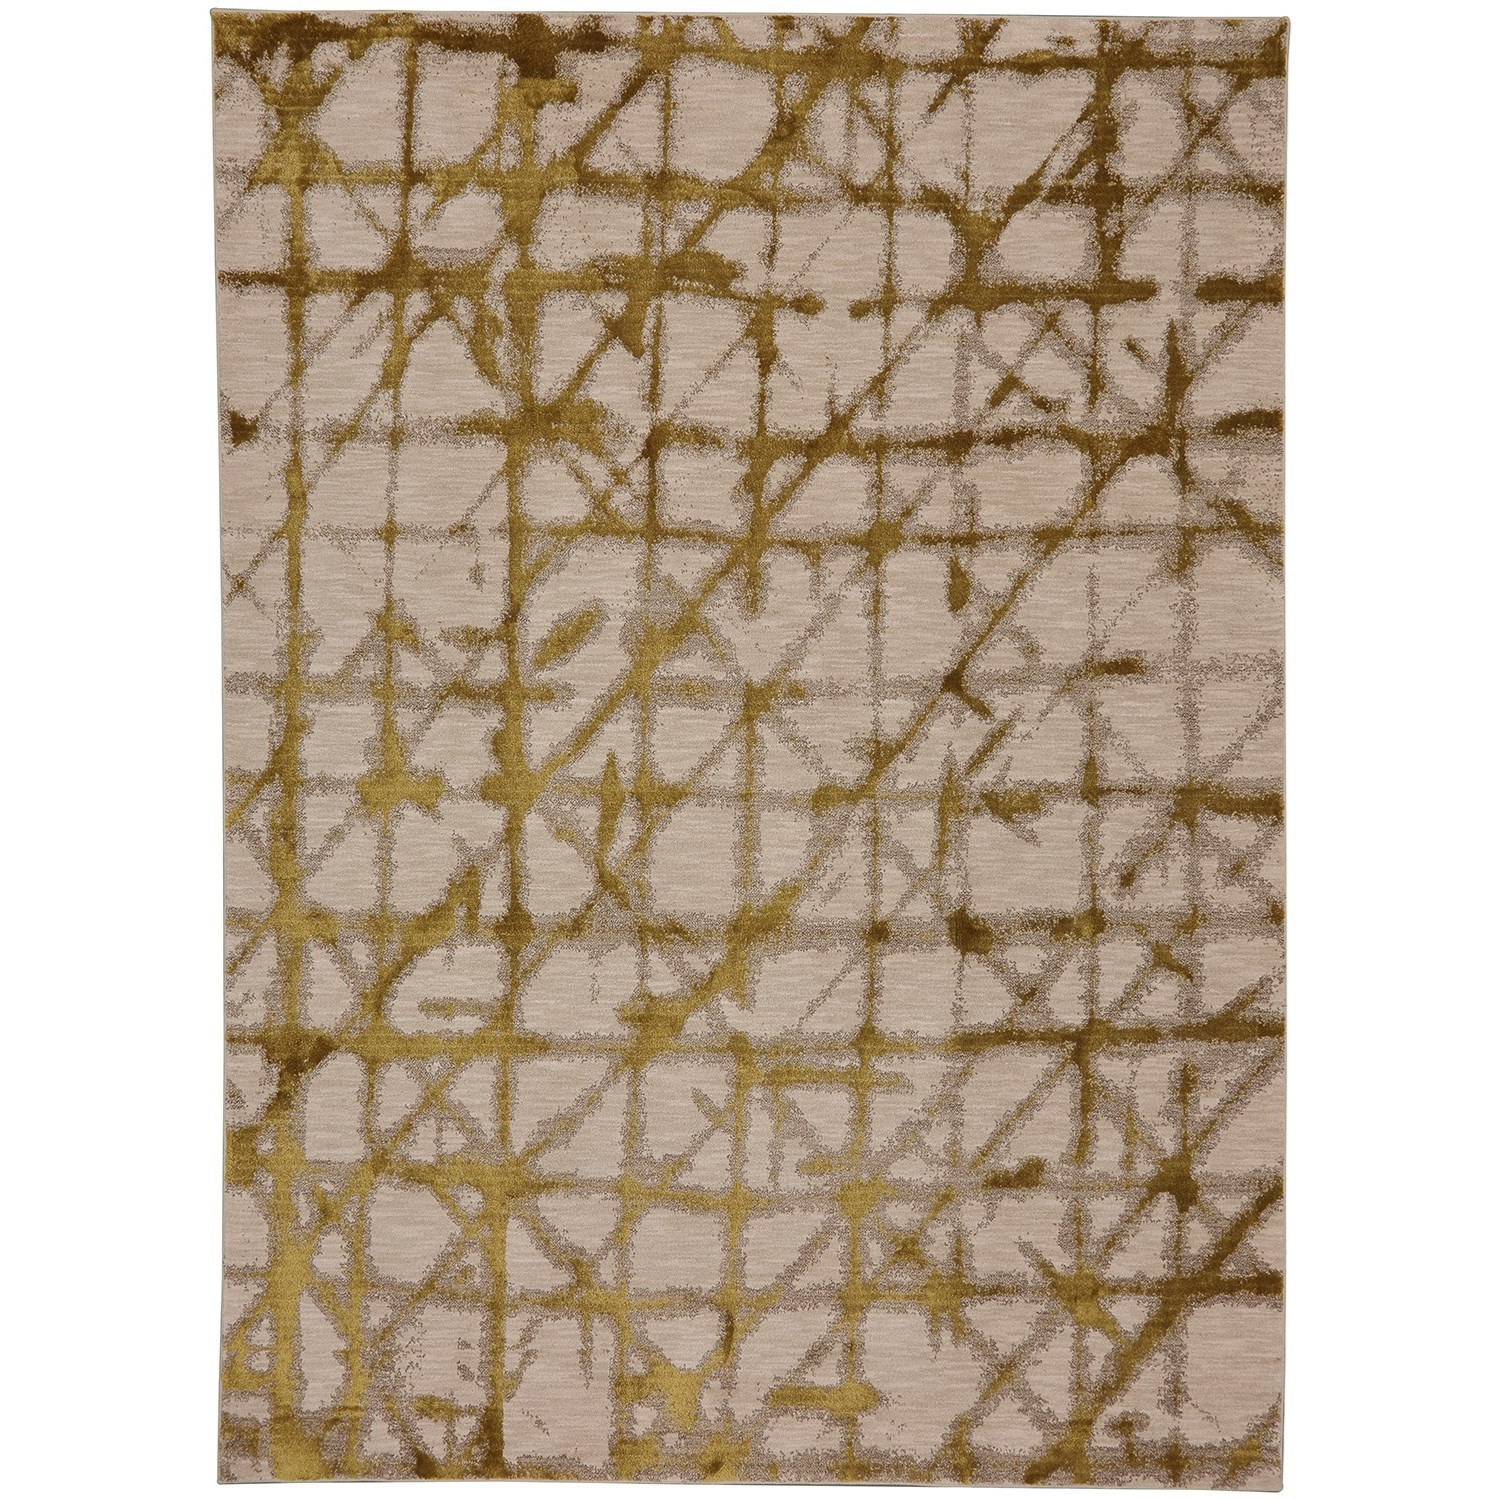 "Enigma 5' 3""x7' 10"" Rectangle Geometric Area Rug by Karastan Rugs at Darvin Furniture"